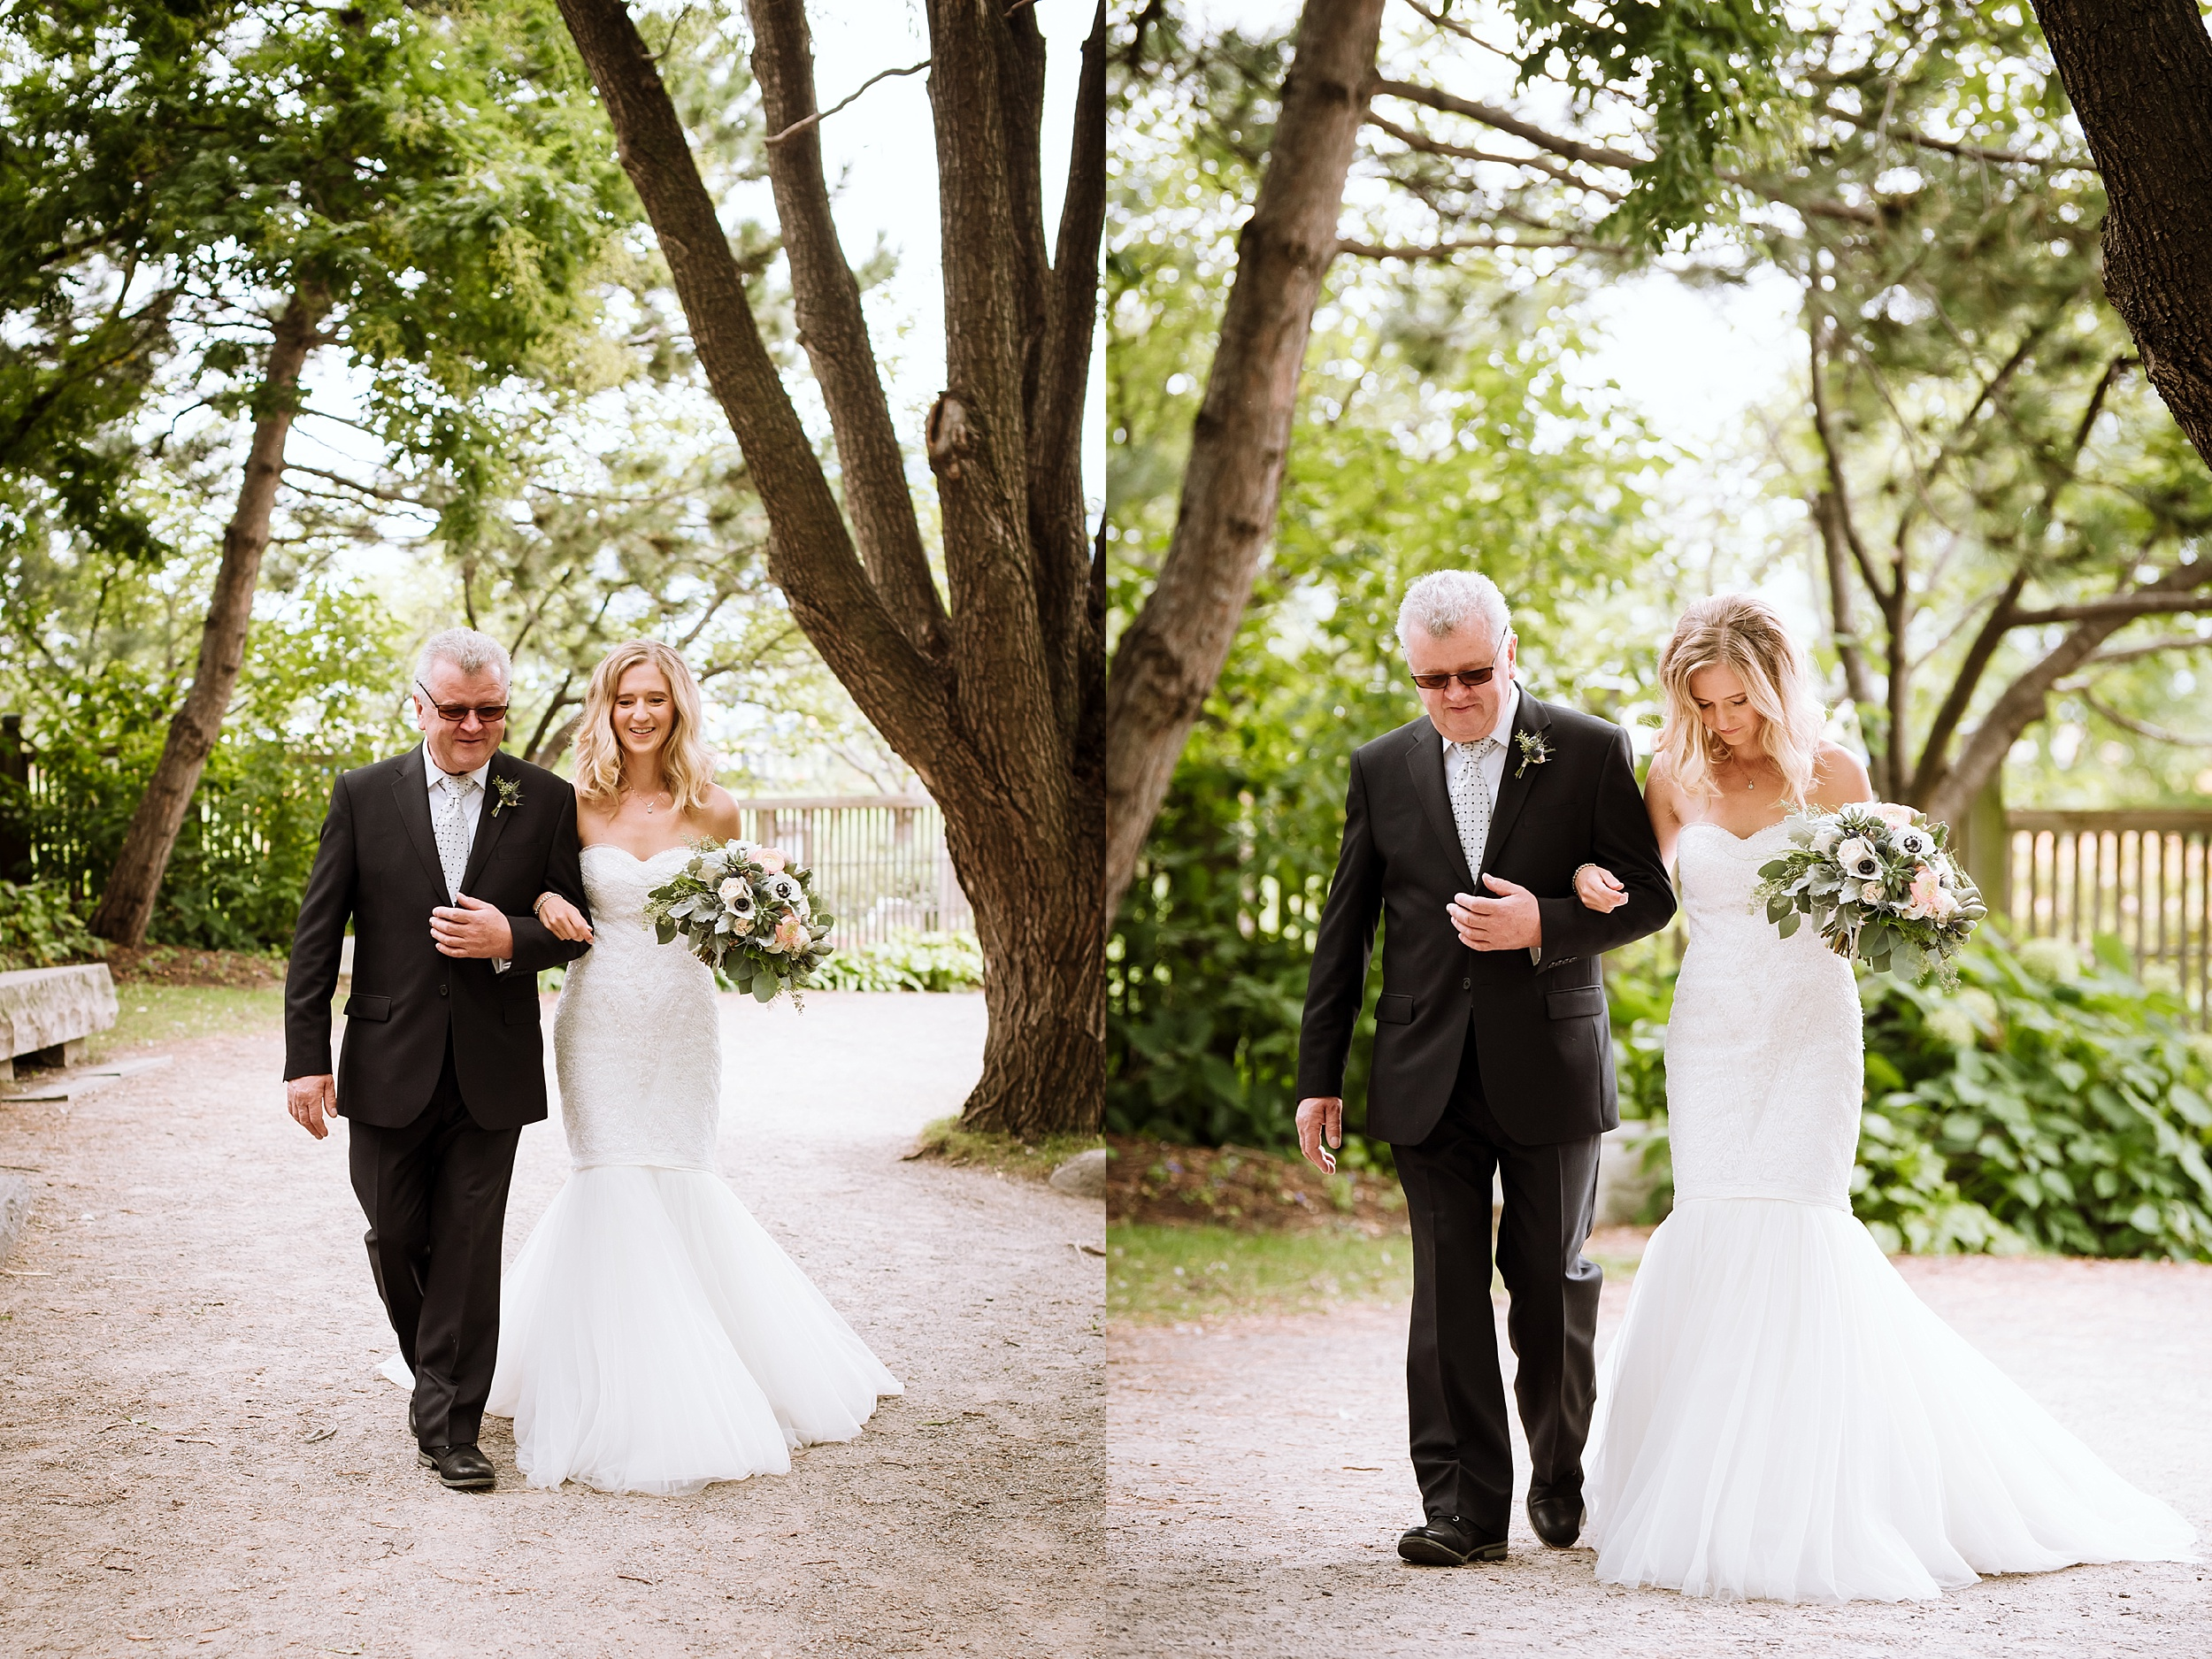 Kariya_Park_Wedding_Shoot_Toronto_Photographer_0046.jpg